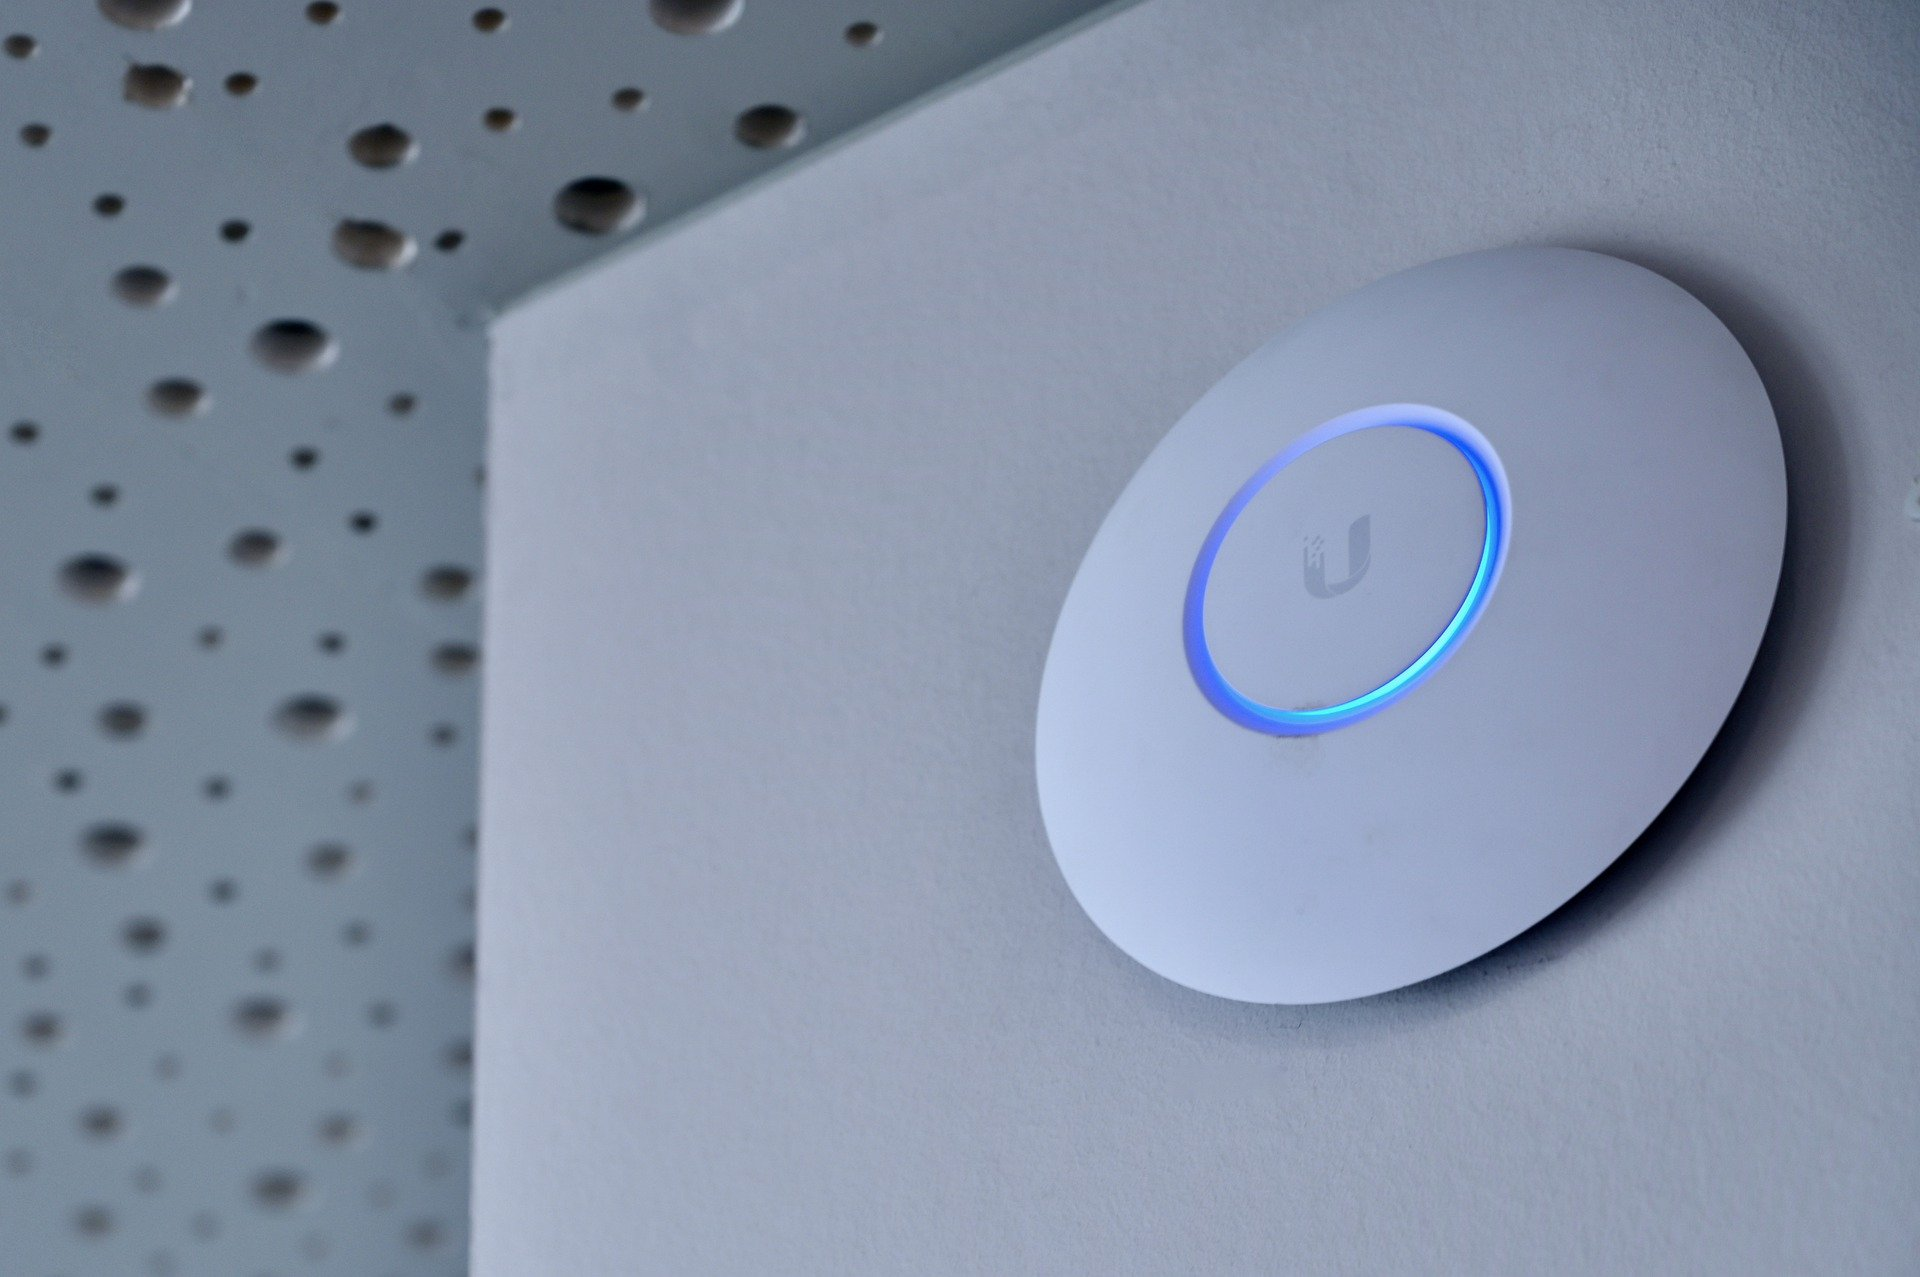 The access point: